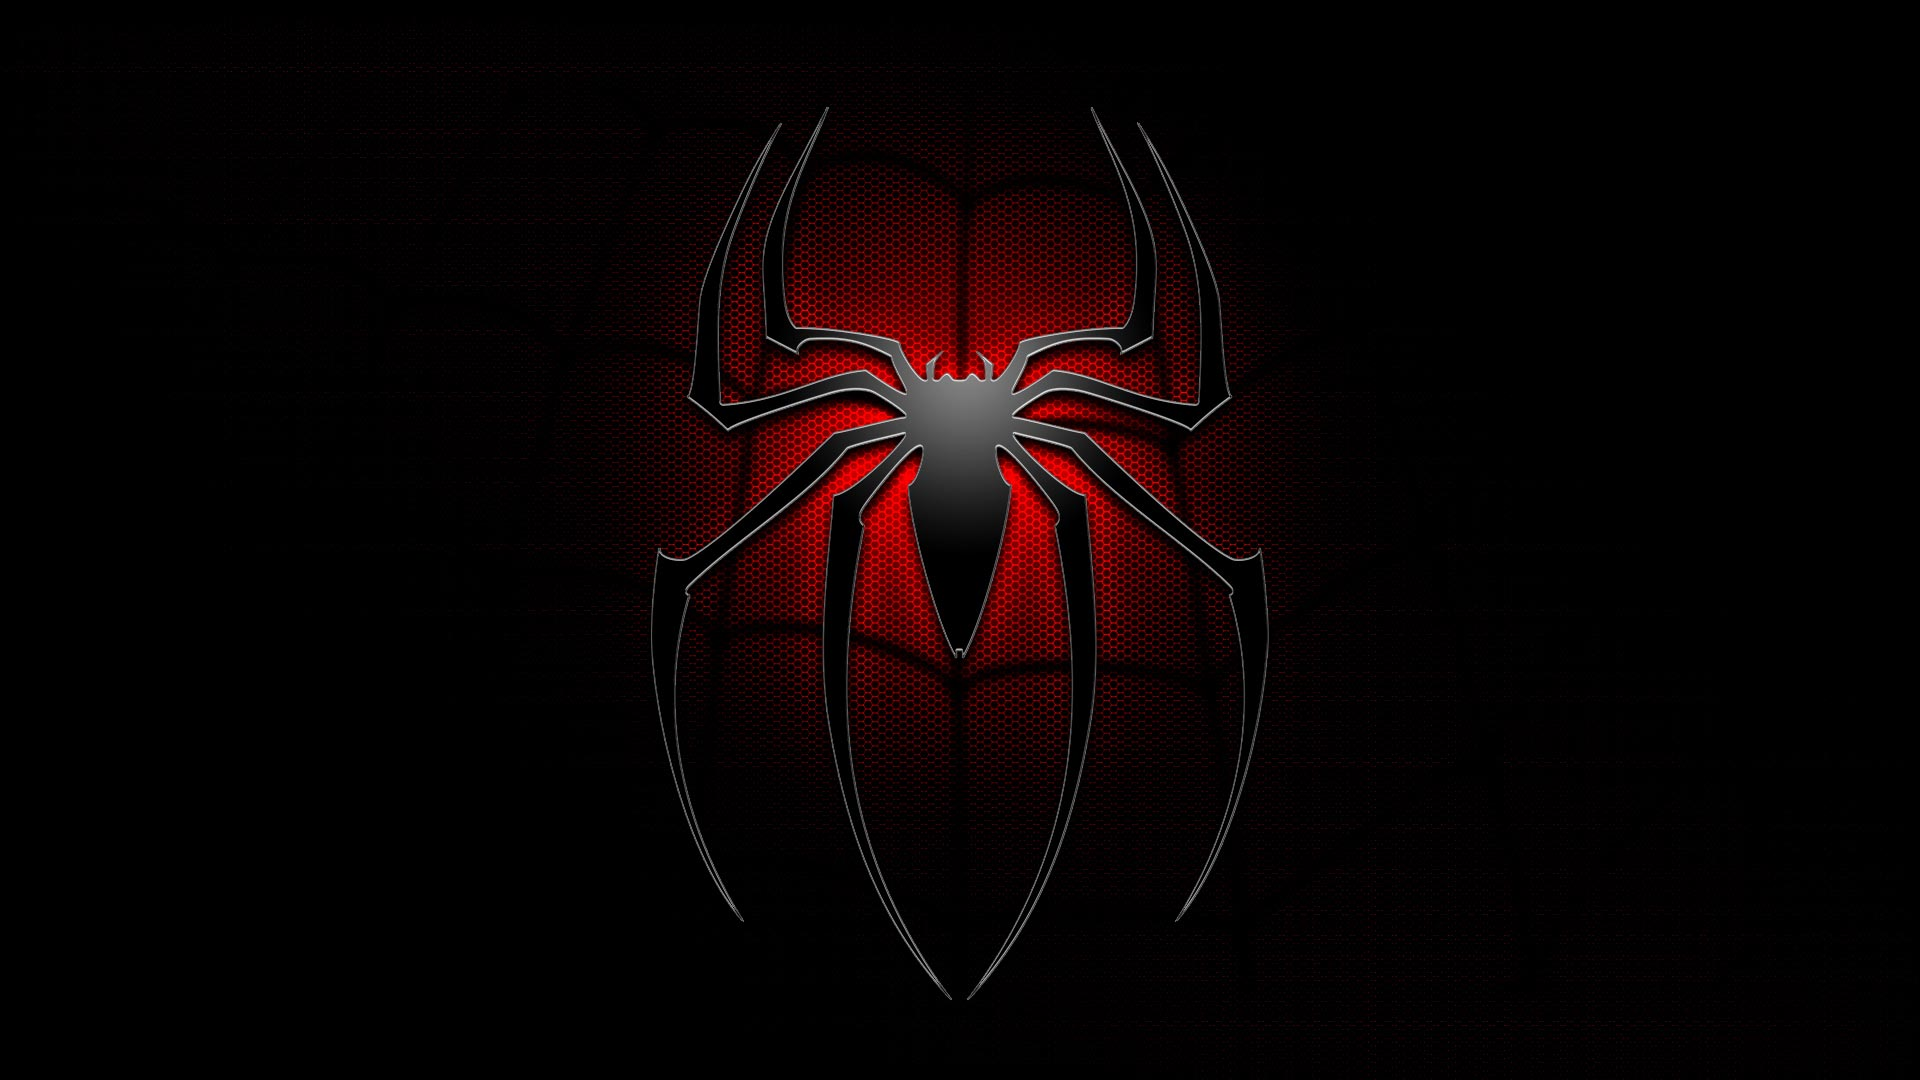 Amazing Spider Man 2 HD Wallpapers Desktop Backgrounds The Amazing 1920x1080